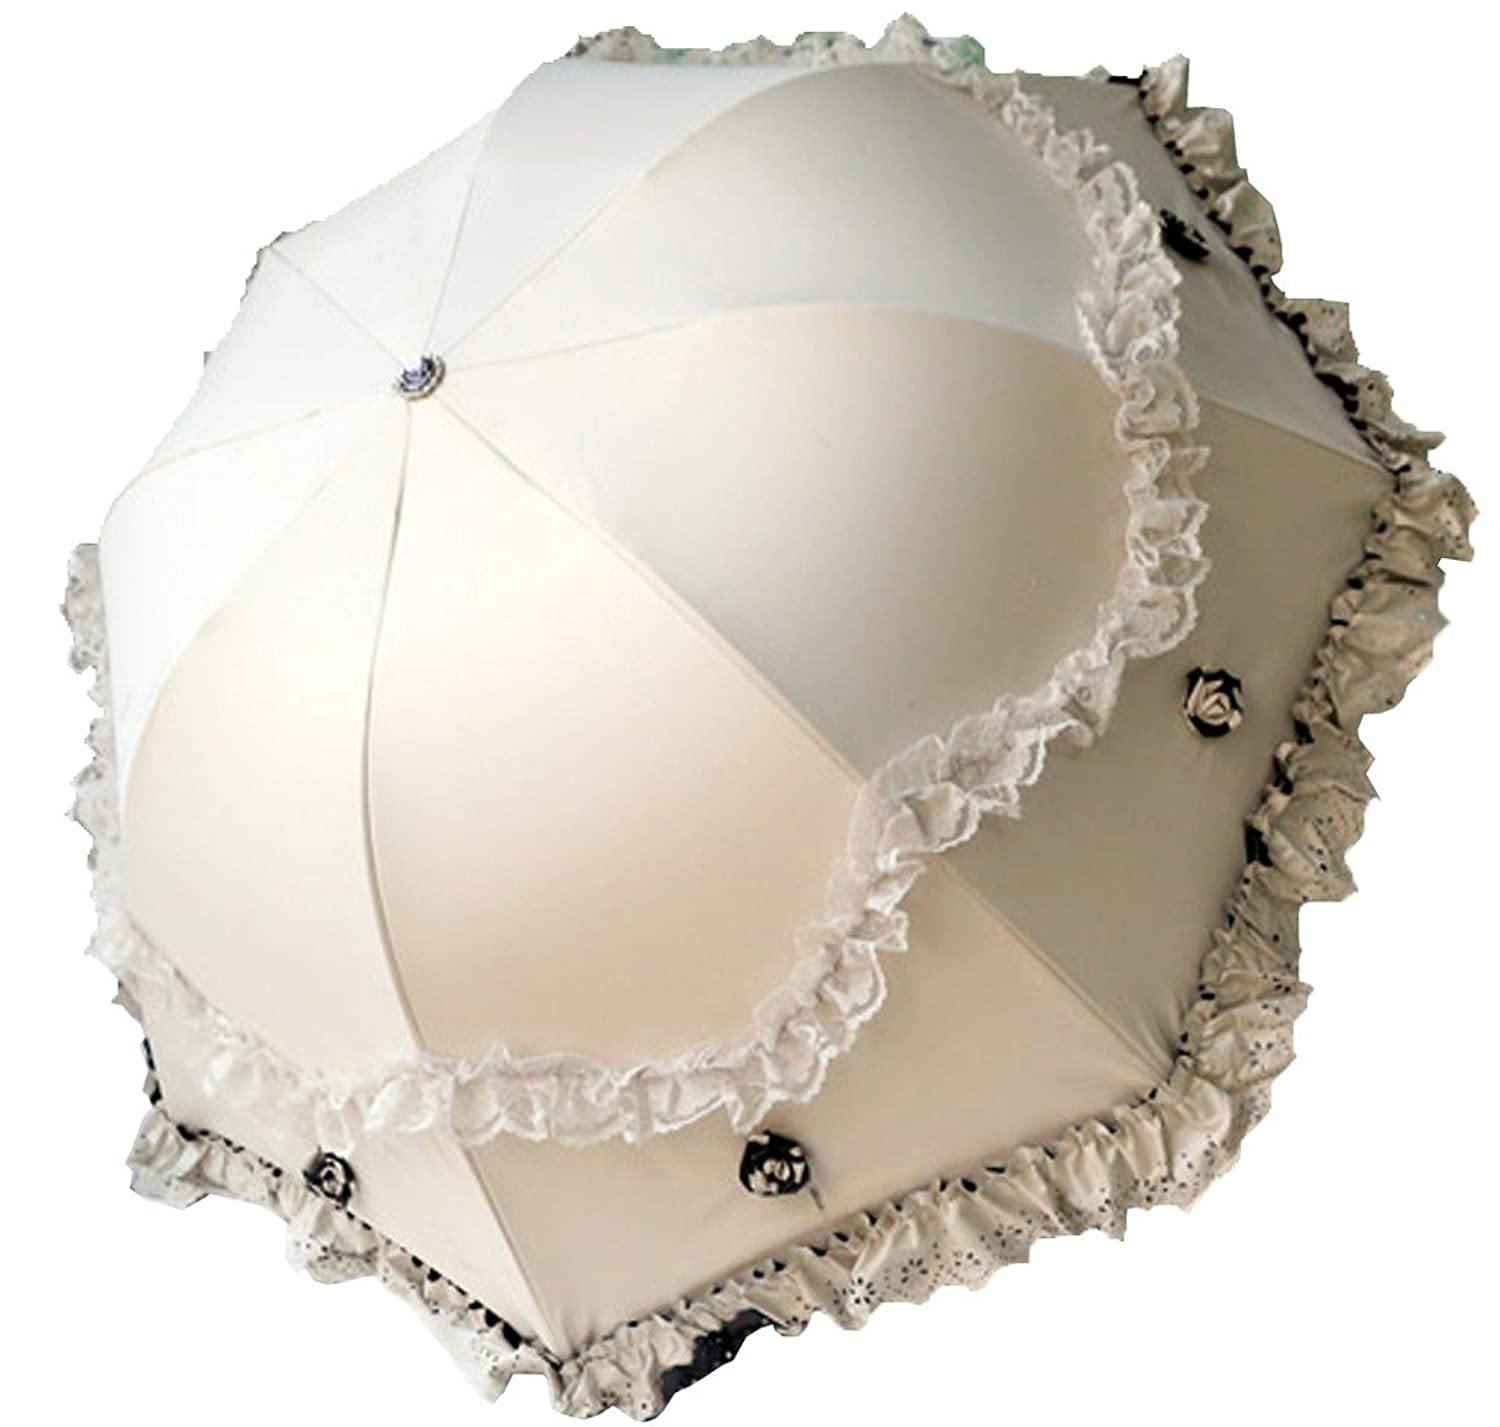 Victorian Inspired Womens Clothing Supergirl Women Parasol Travel Compact Lace Sunshade Anti-UV Windproof Rain Umbrella $28.99 AT vintagedancer.com